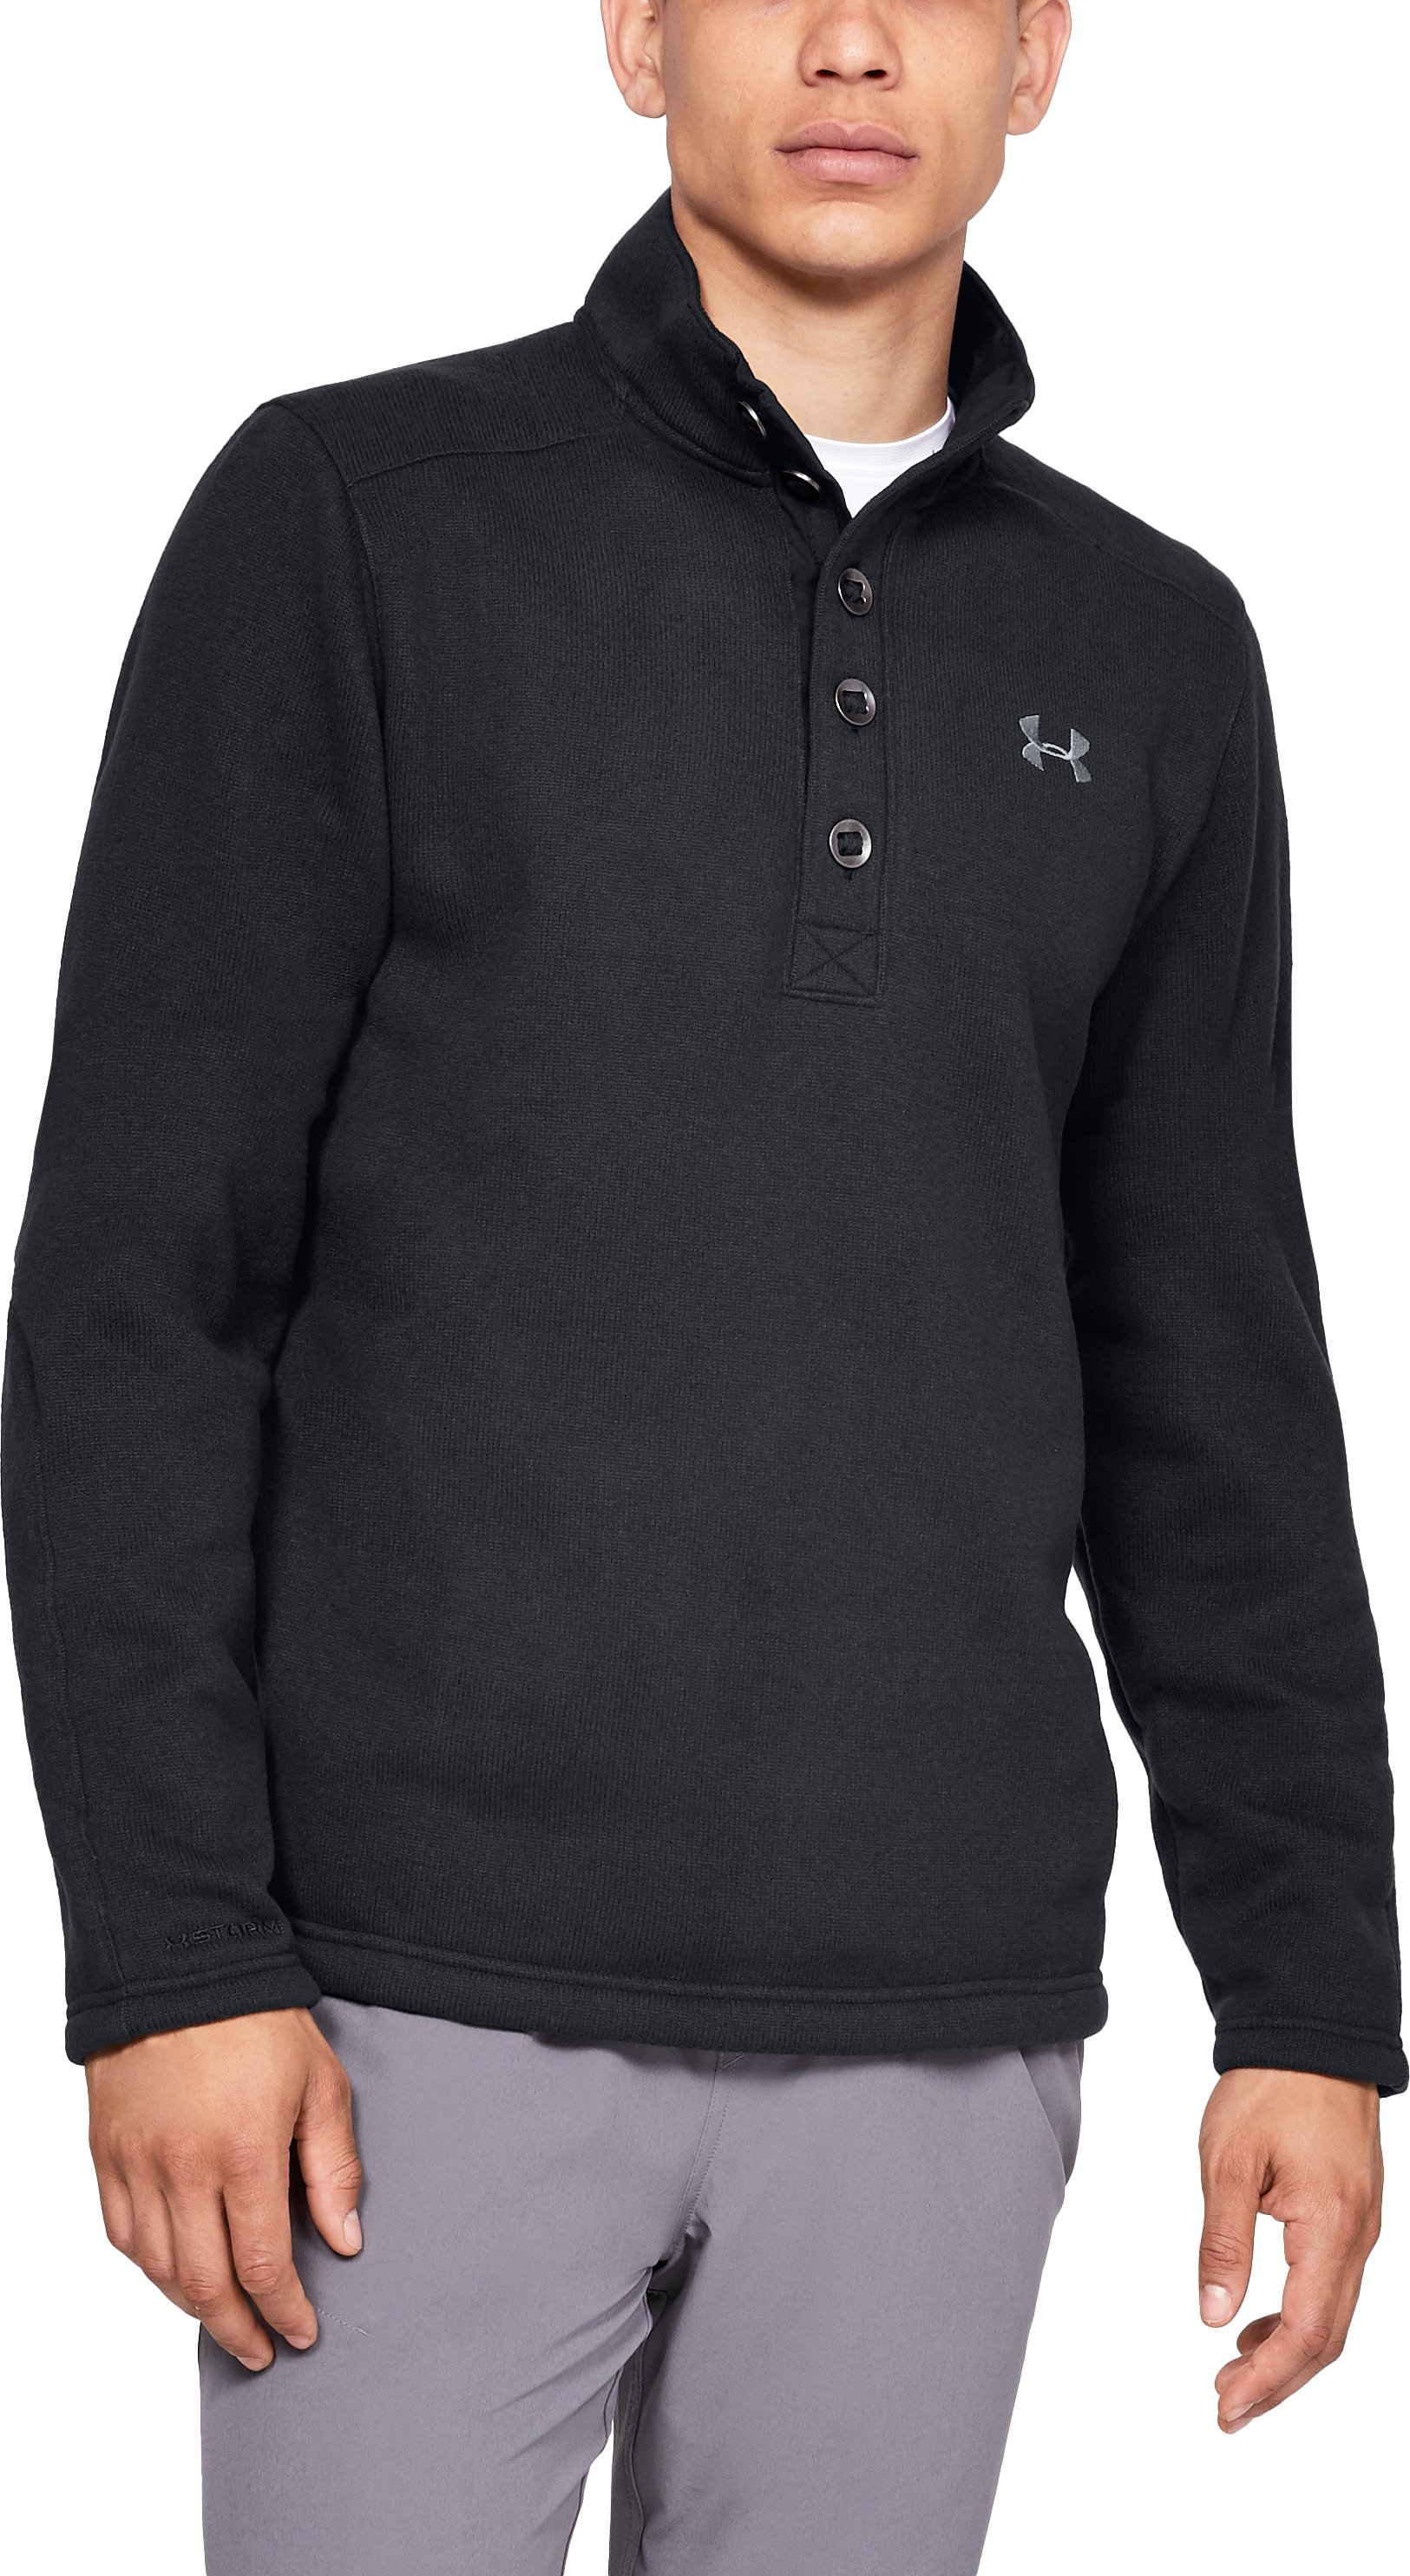 small sweaters Men's UA Storm Specialist Sweater Great purchase....Got the medium and I absolutely LOVE it!!!...Great look and feel.